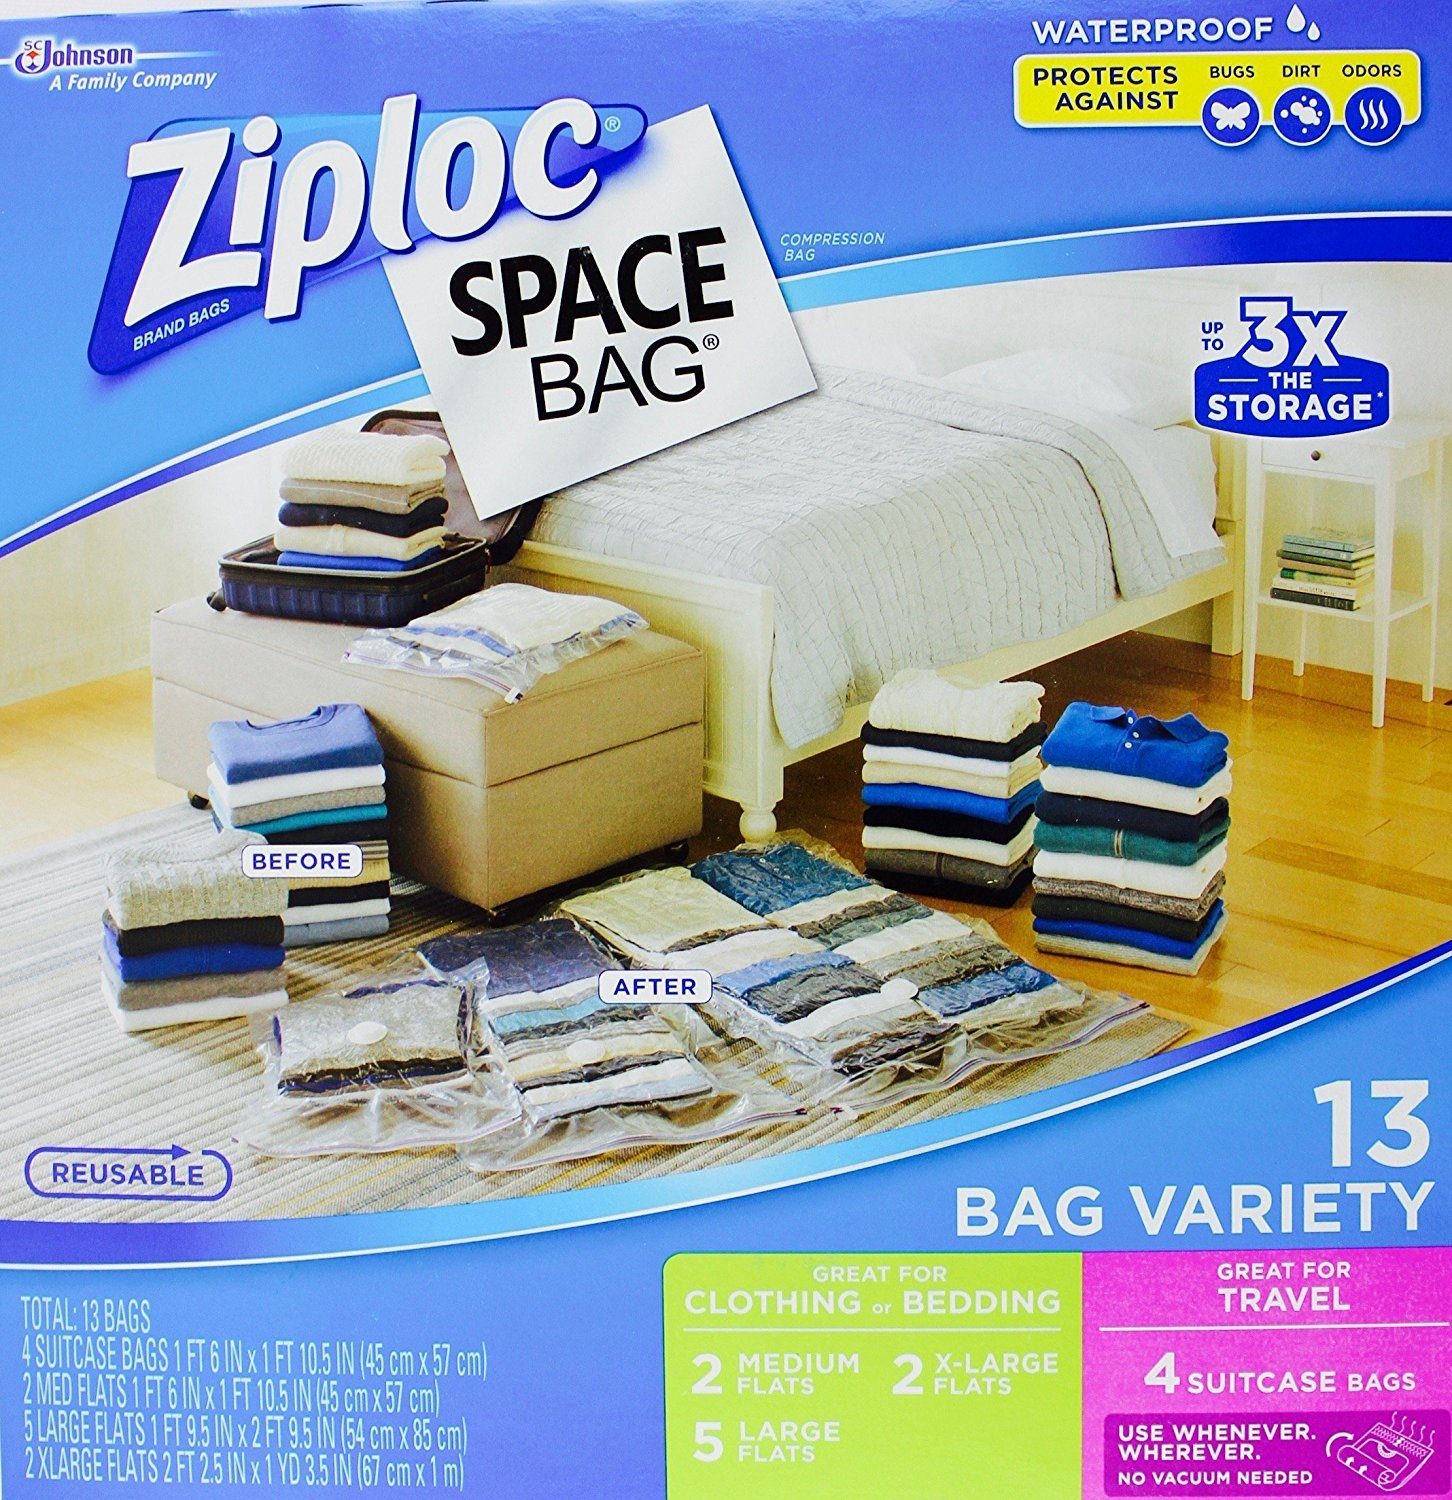 Ziploc Space Bag- Vacuum Seal Bag- 13 Bag Variety- 4 Travel, 2 Med, 5 Lrg, 2 XL Space Bags 883668